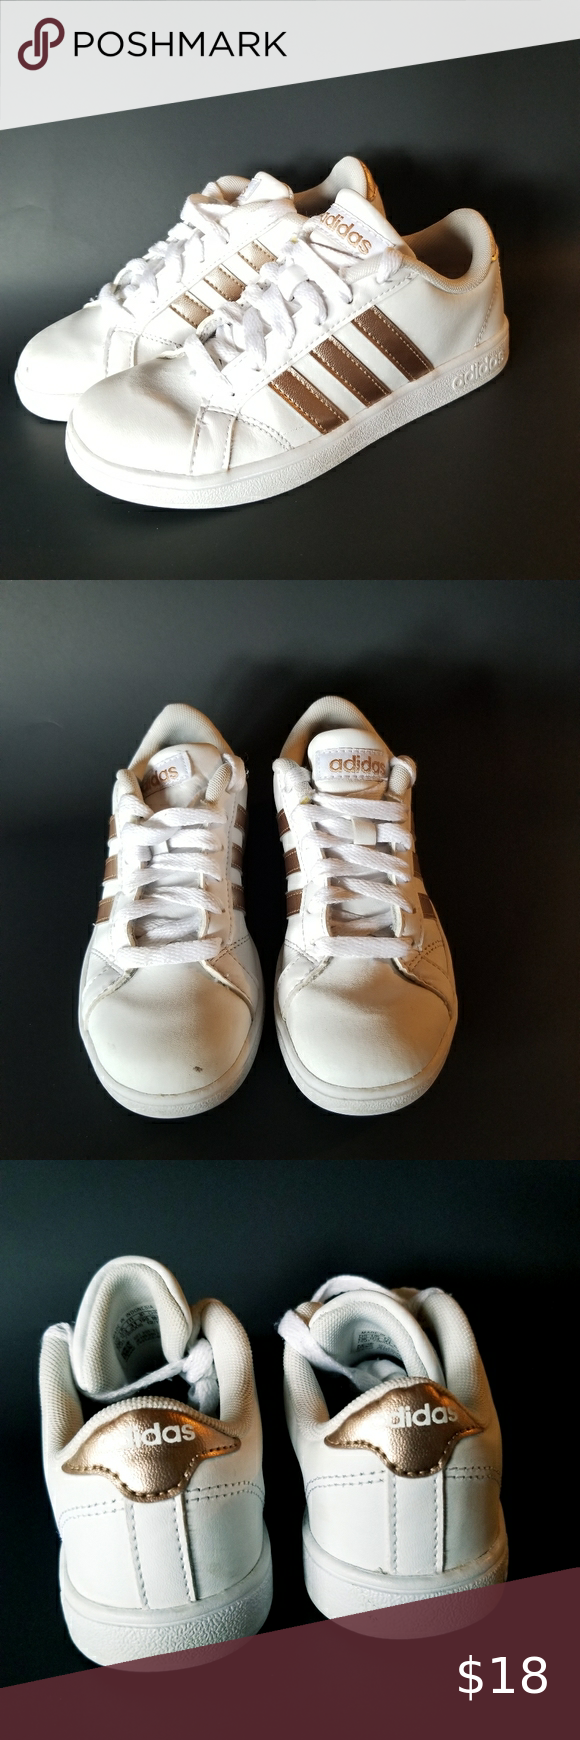 Girls Adidas Grand Court Sneakers Size